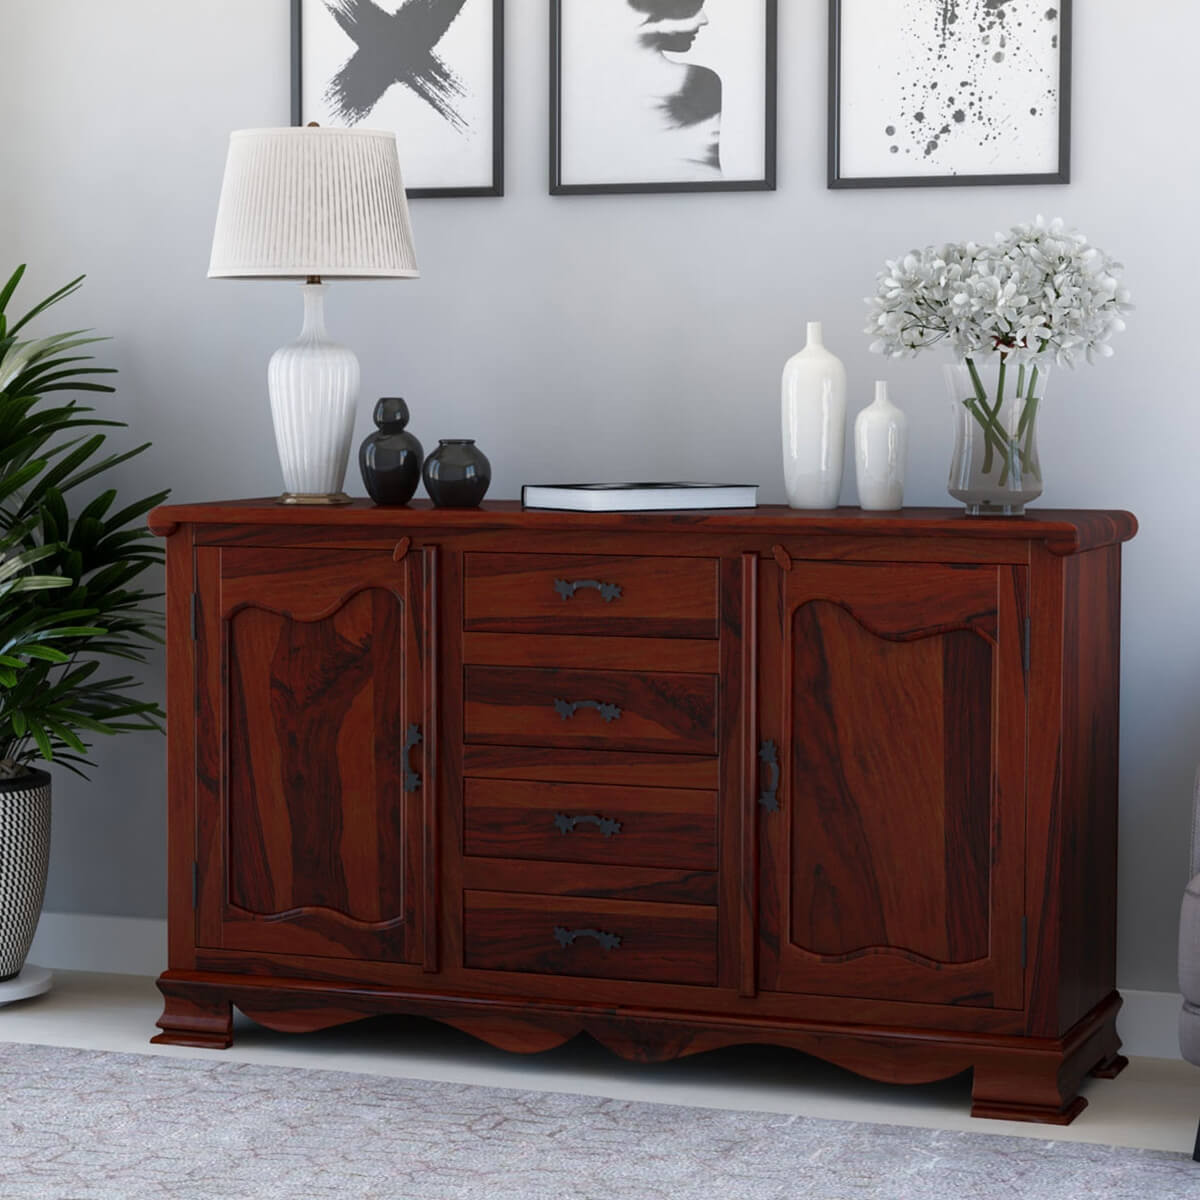 french rustic solid wood 4 drawer large sideboard cabinet. Black Bedroom Furniture Sets. Home Design Ideas